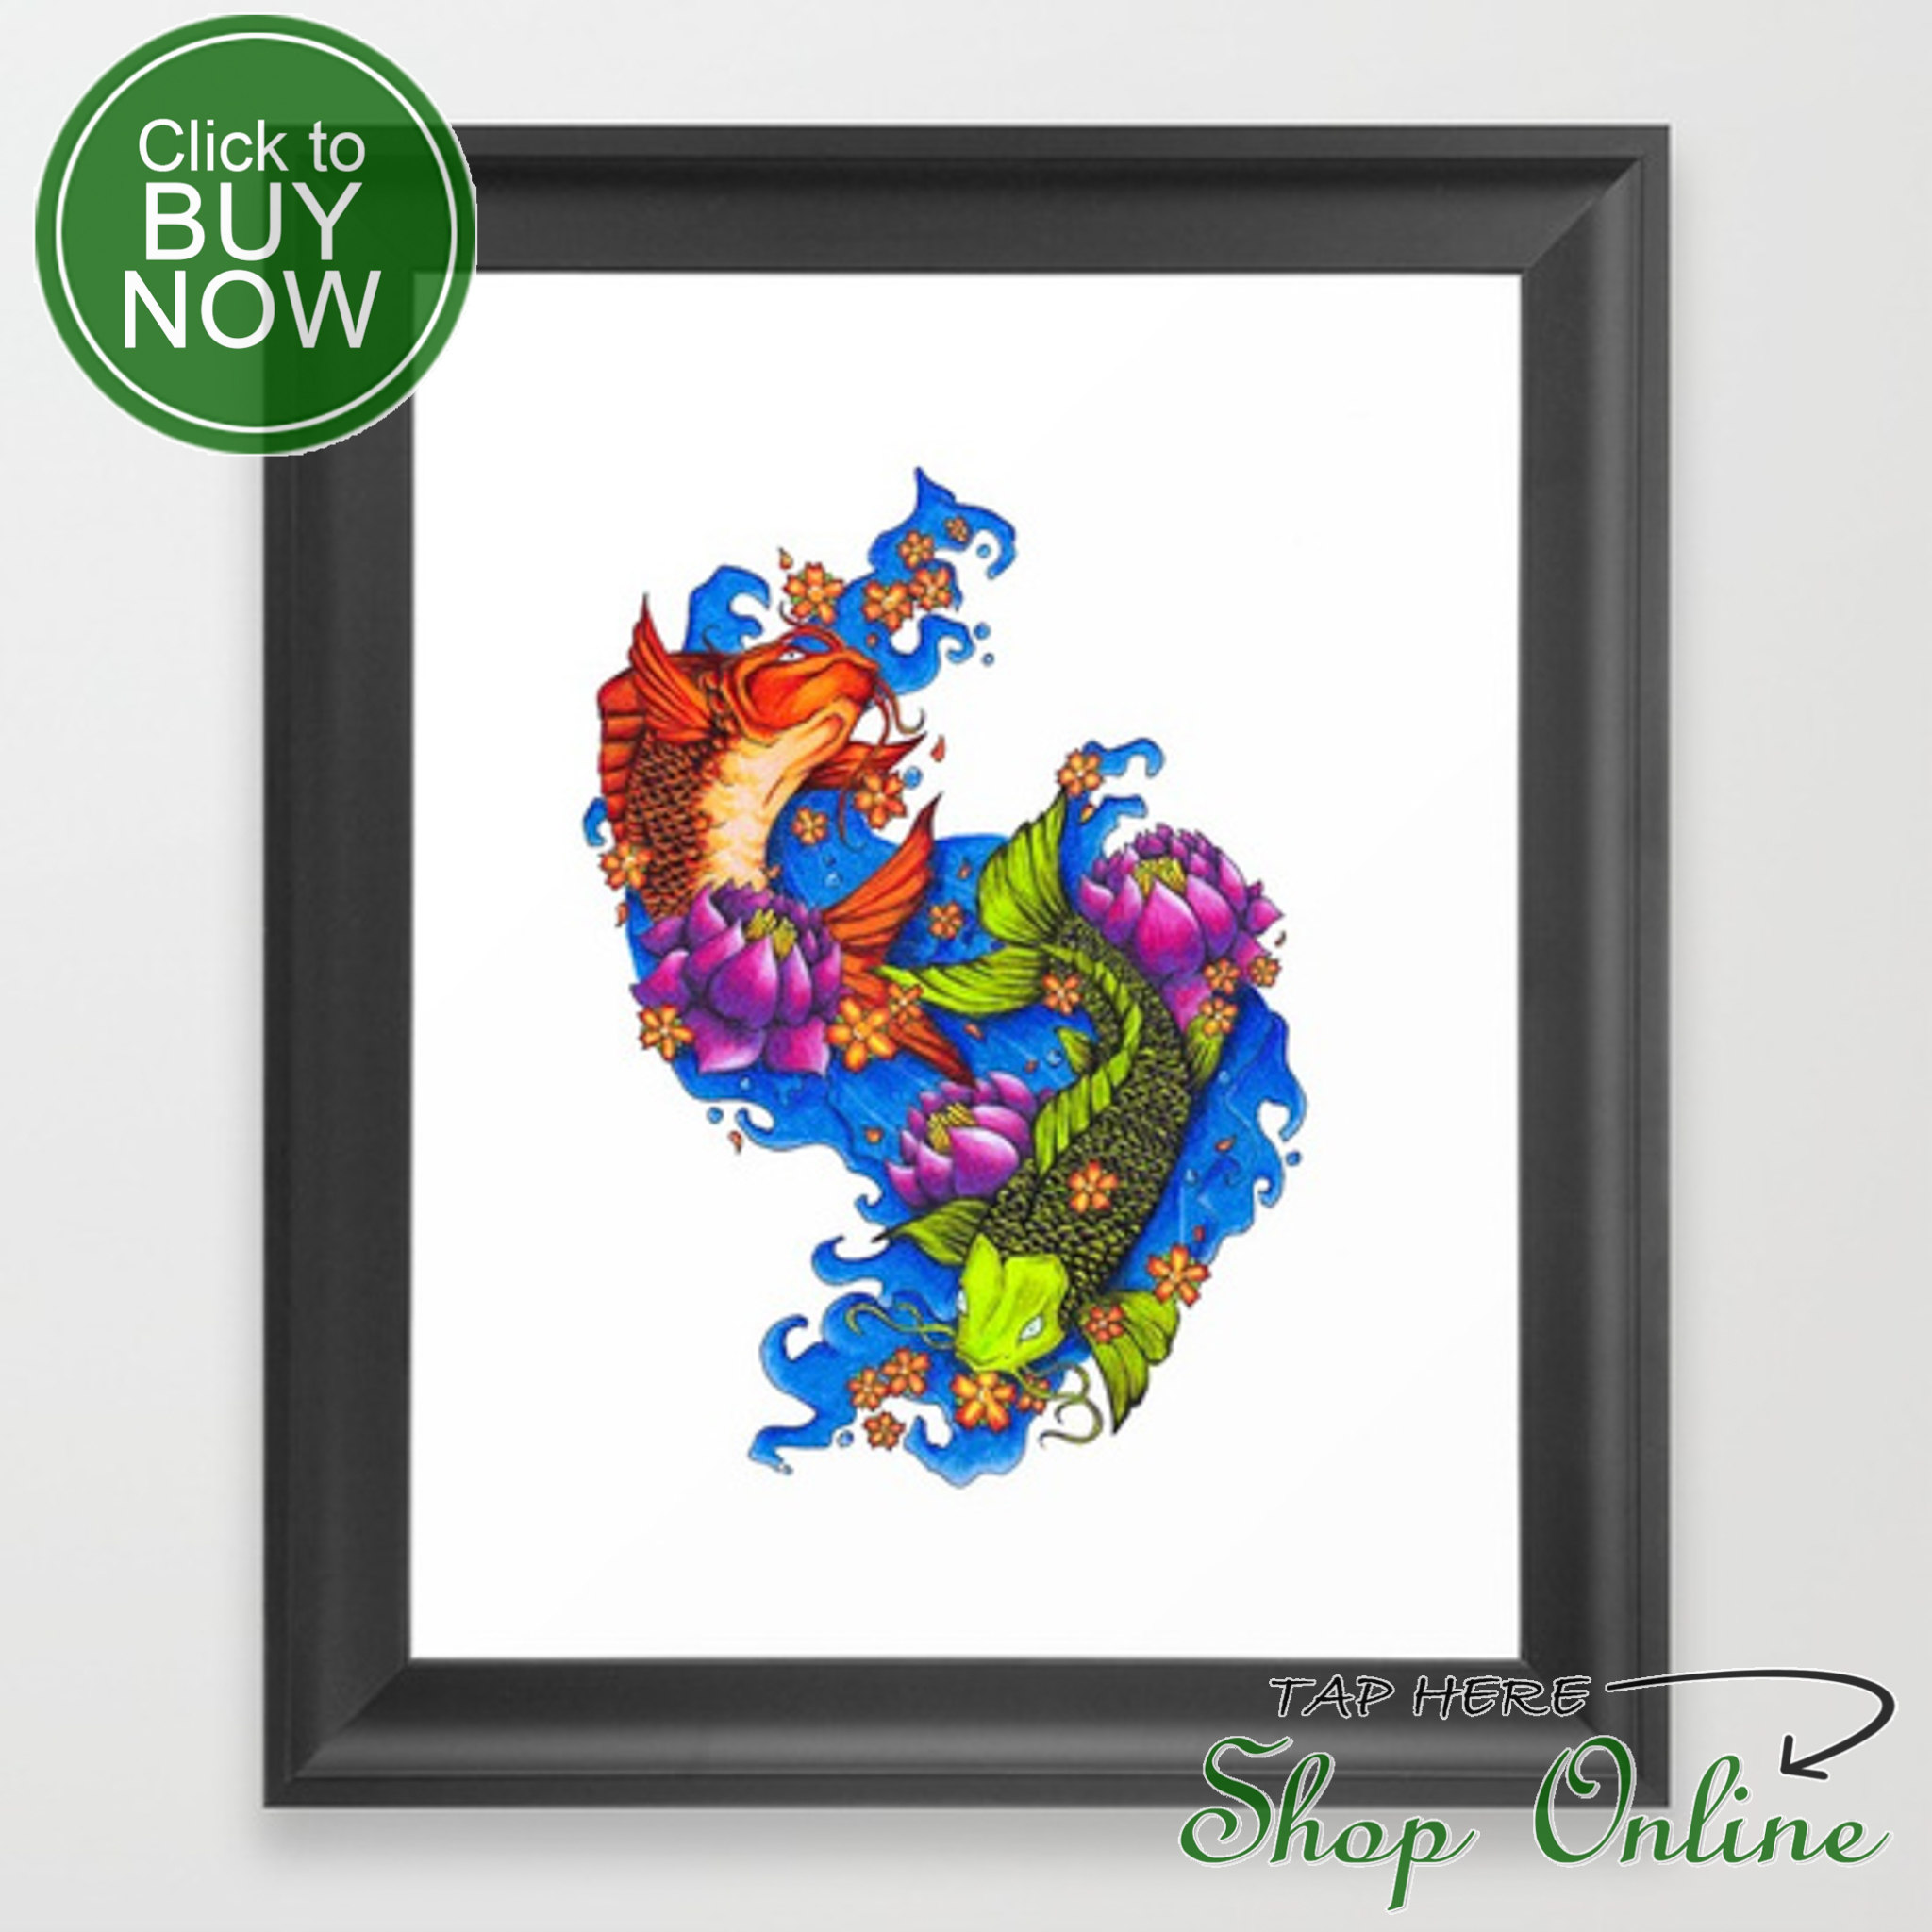 koi-fish-sp5-framed-prints.JPG